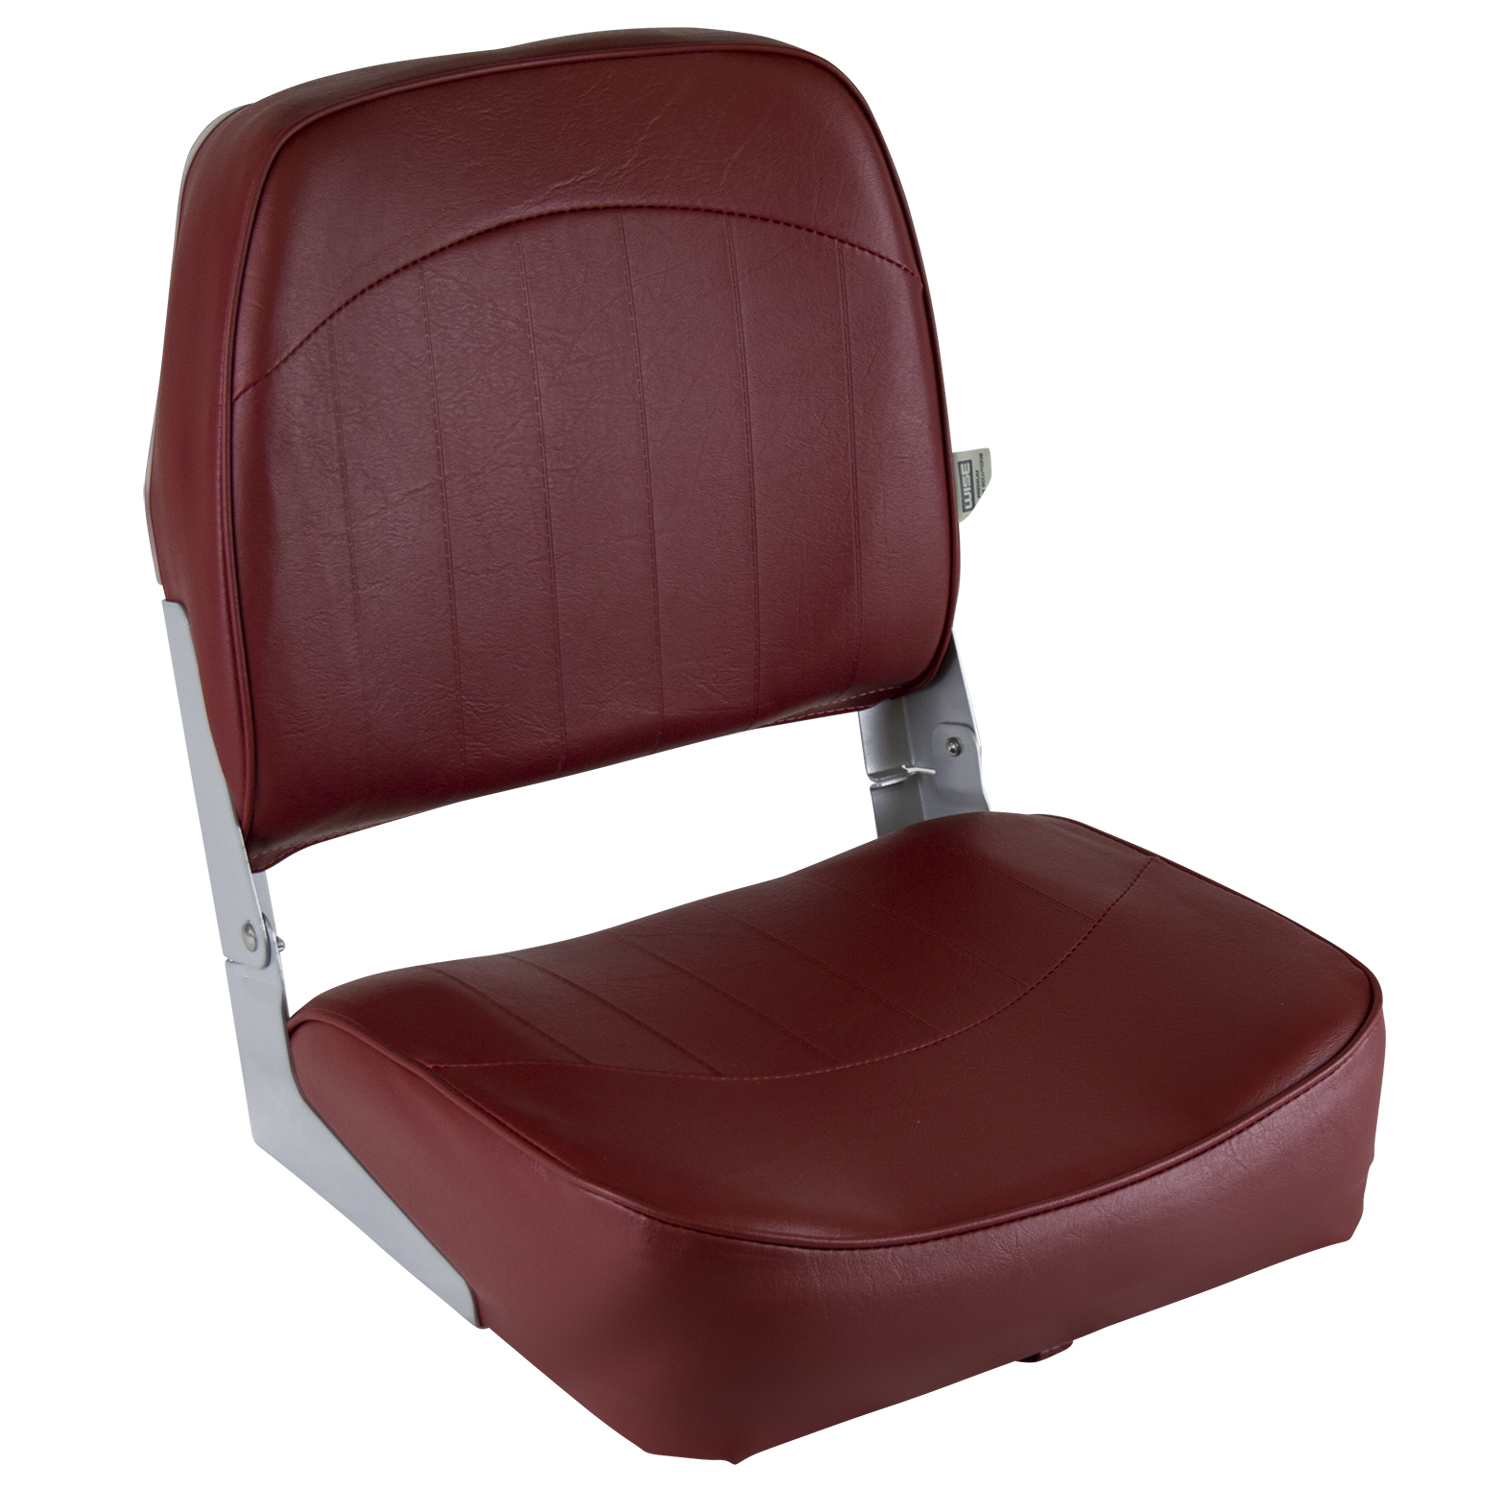 replacement captains chairs for boats backyard lounge wise boat seats 8wd734pls 712 low back seat red